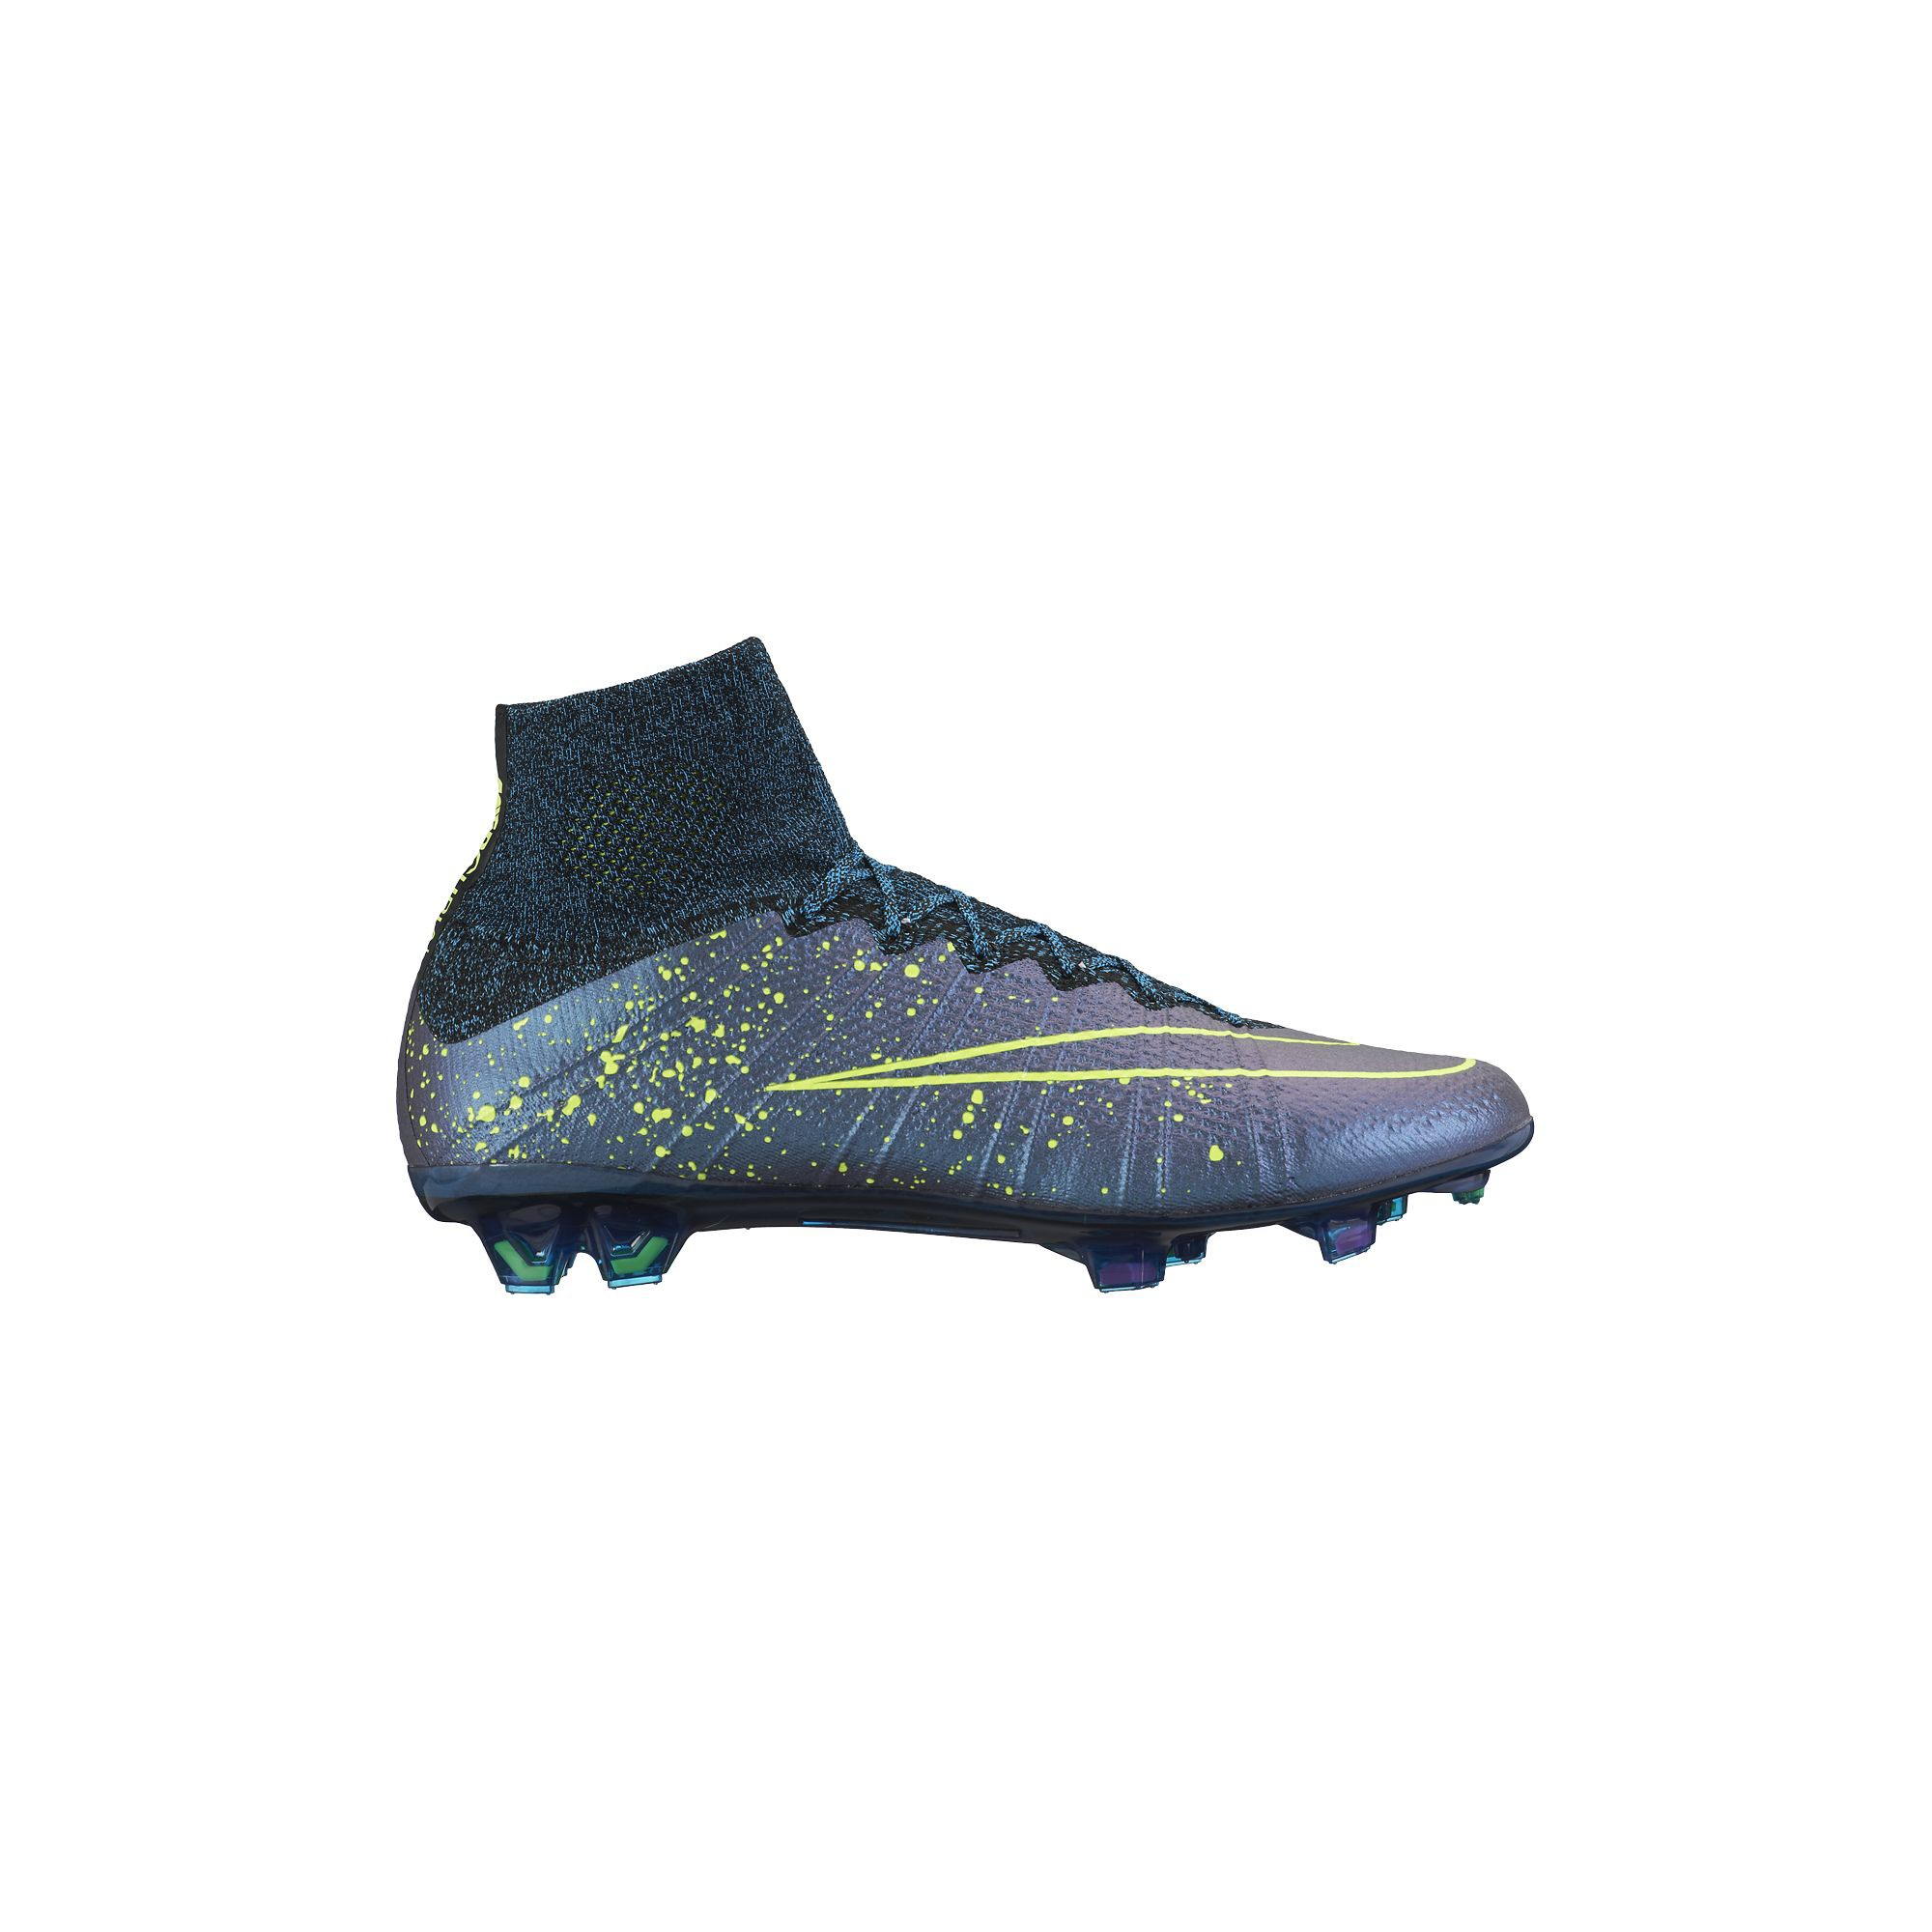 Buty Nike mercurial superfly fg